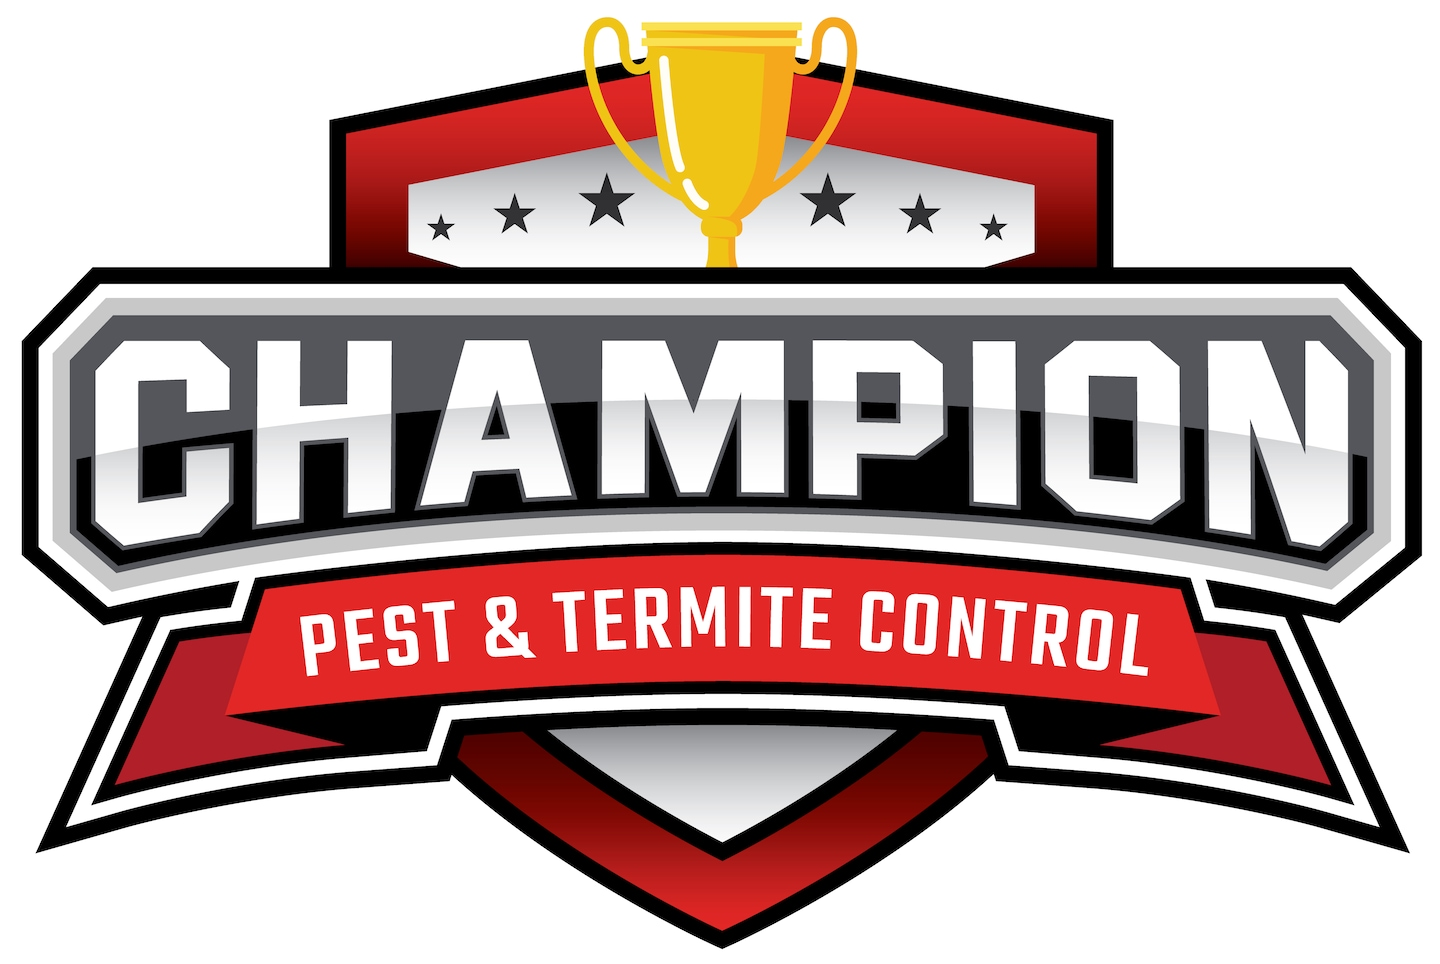 Champion Pest & Termite Control LLC